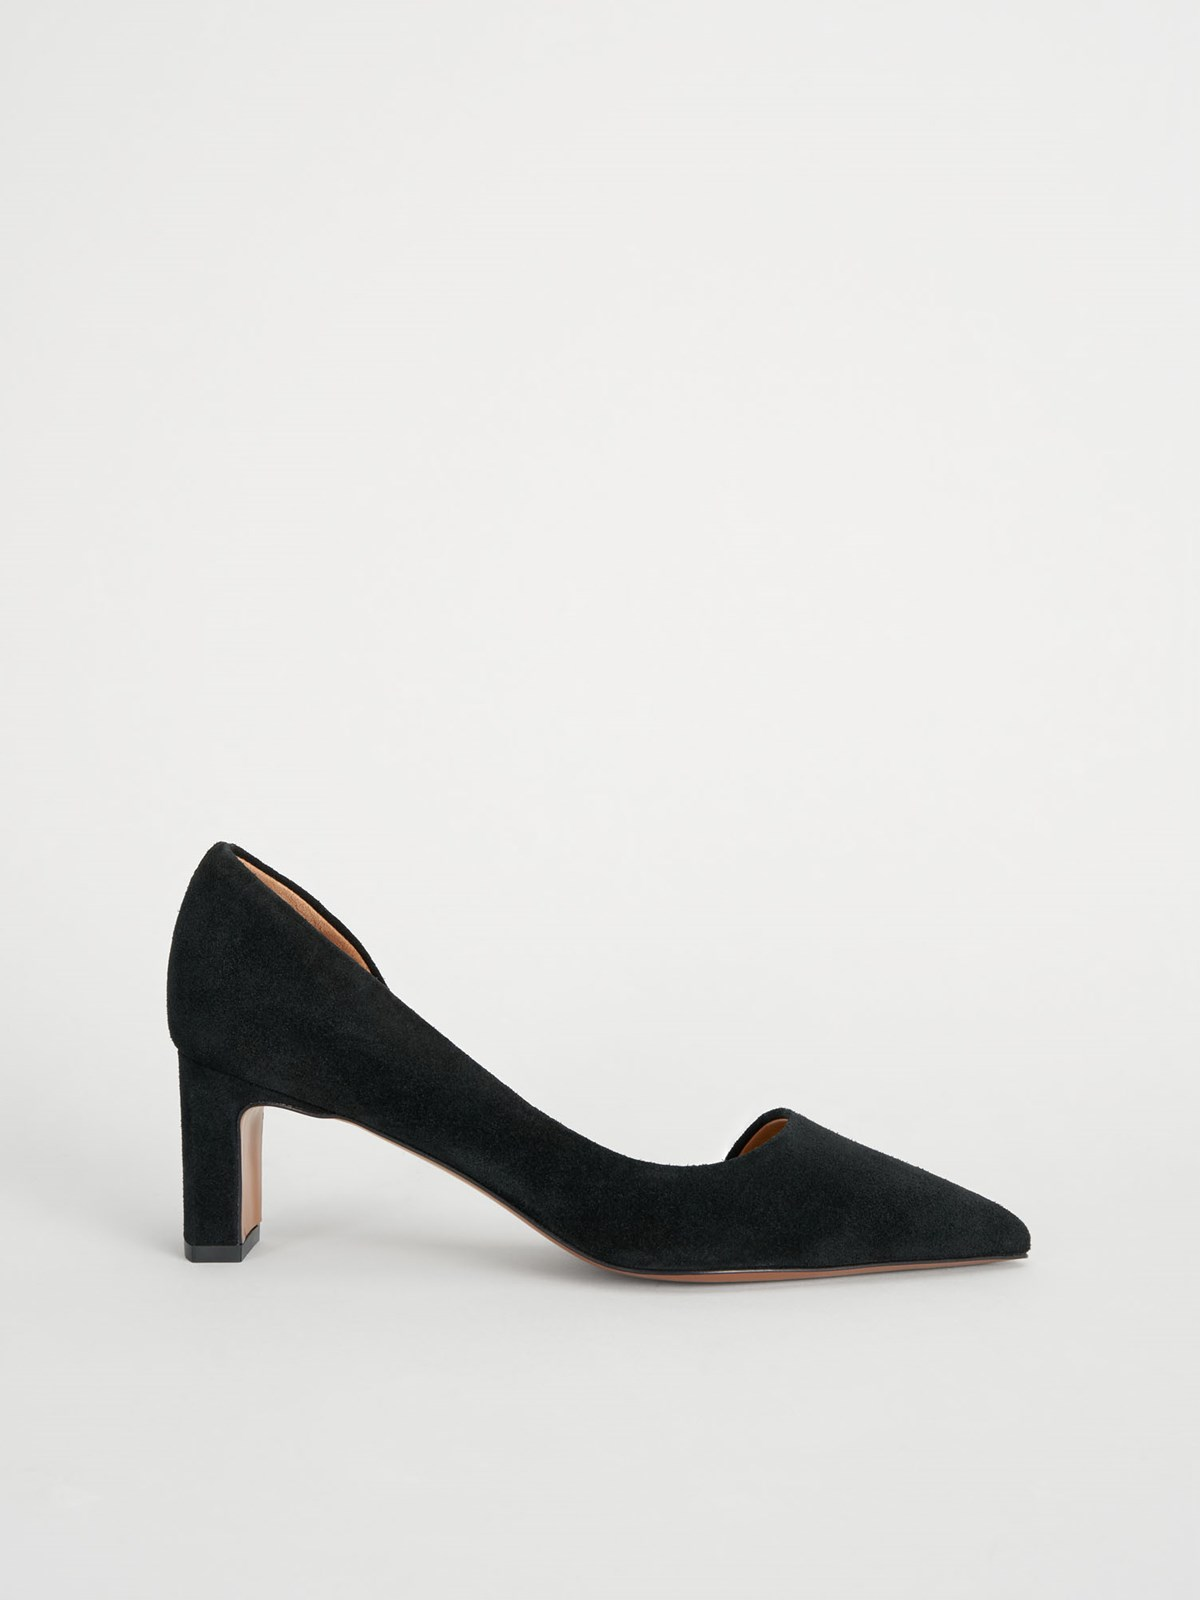 Carmiano Black Pumps